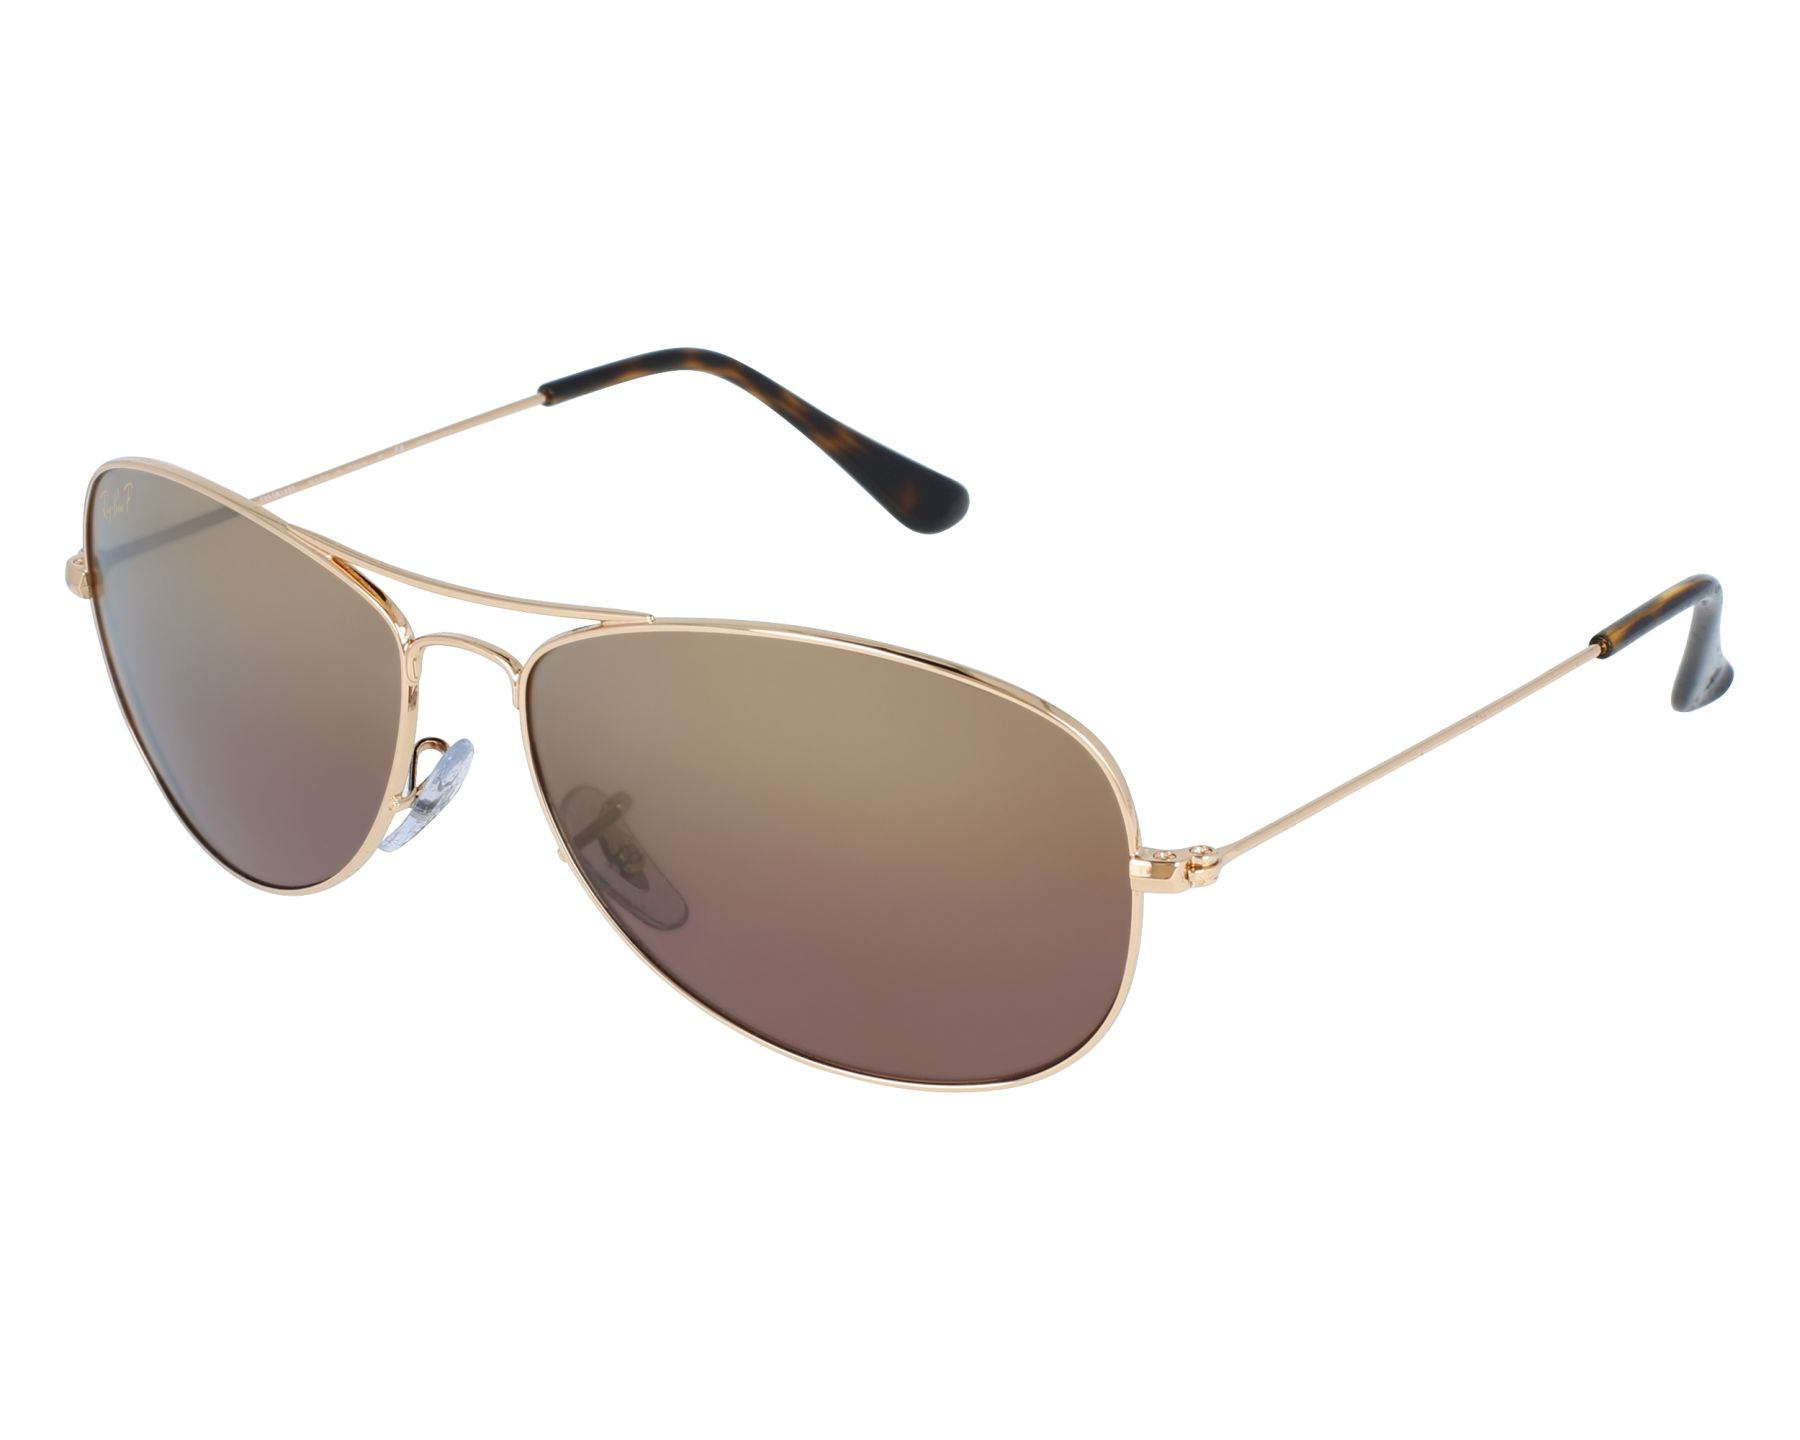 3b51cec61d Sunglasses Ray-Ban RB-3562 001 6B 59-14 Gold front view